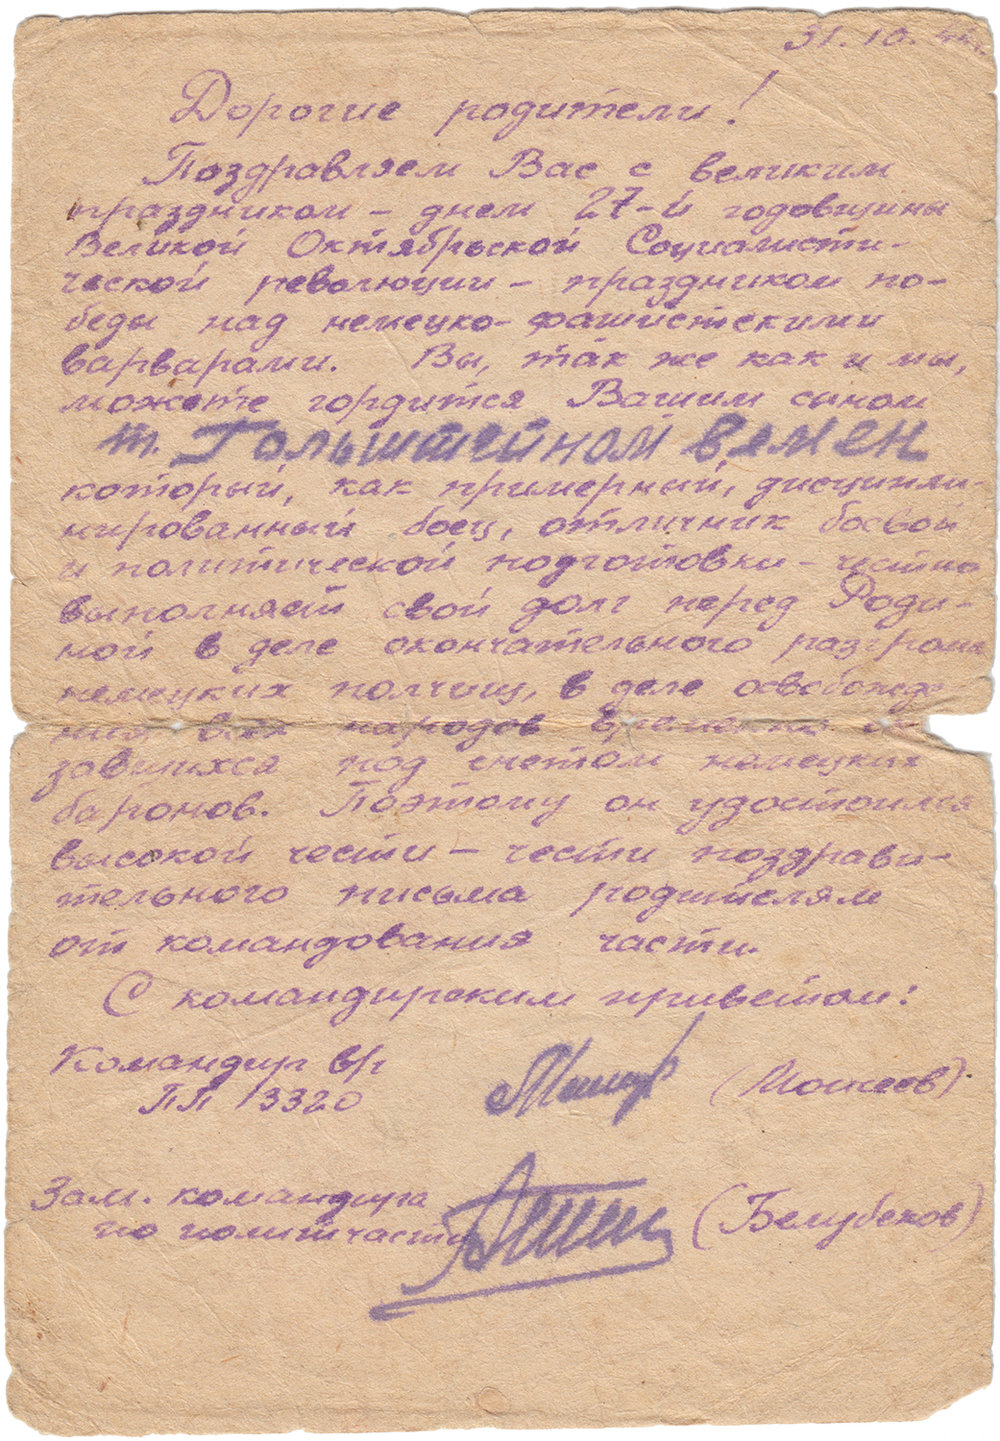 Letter to Semeon Goldshtein's parents from his commander, praising him as a soldier  Похвальное письмо родителям Семена Гольдштейна от его командира